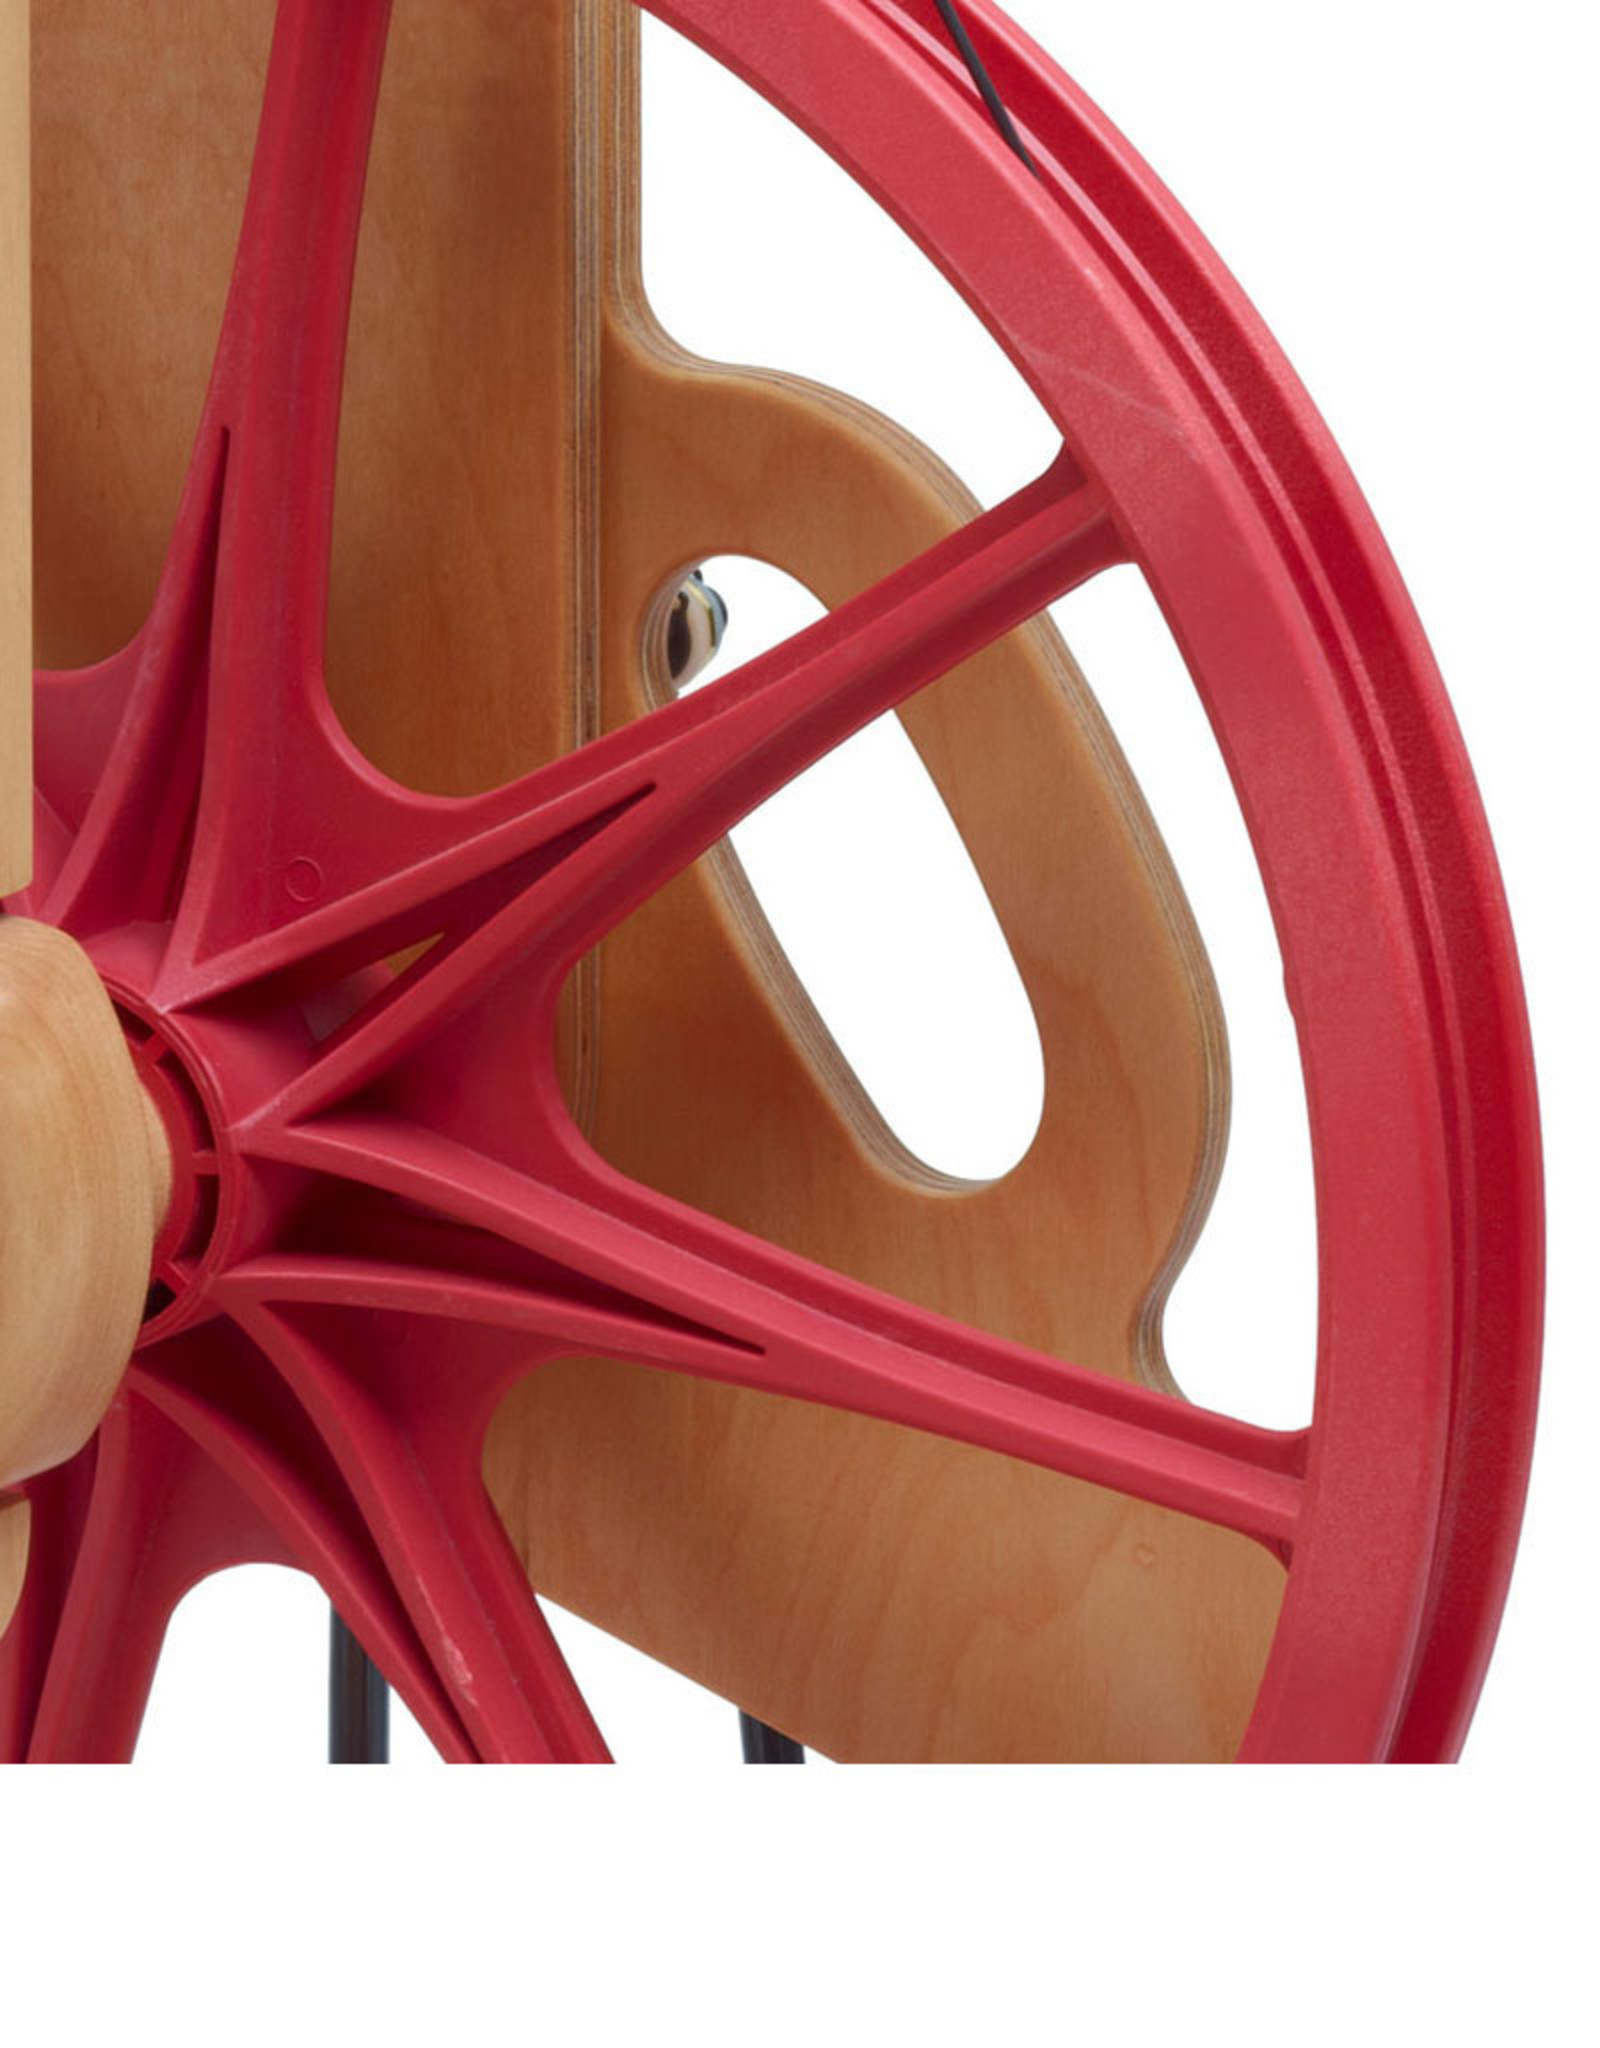 Schacht Spindle Company Ladybug Spinning Wheel